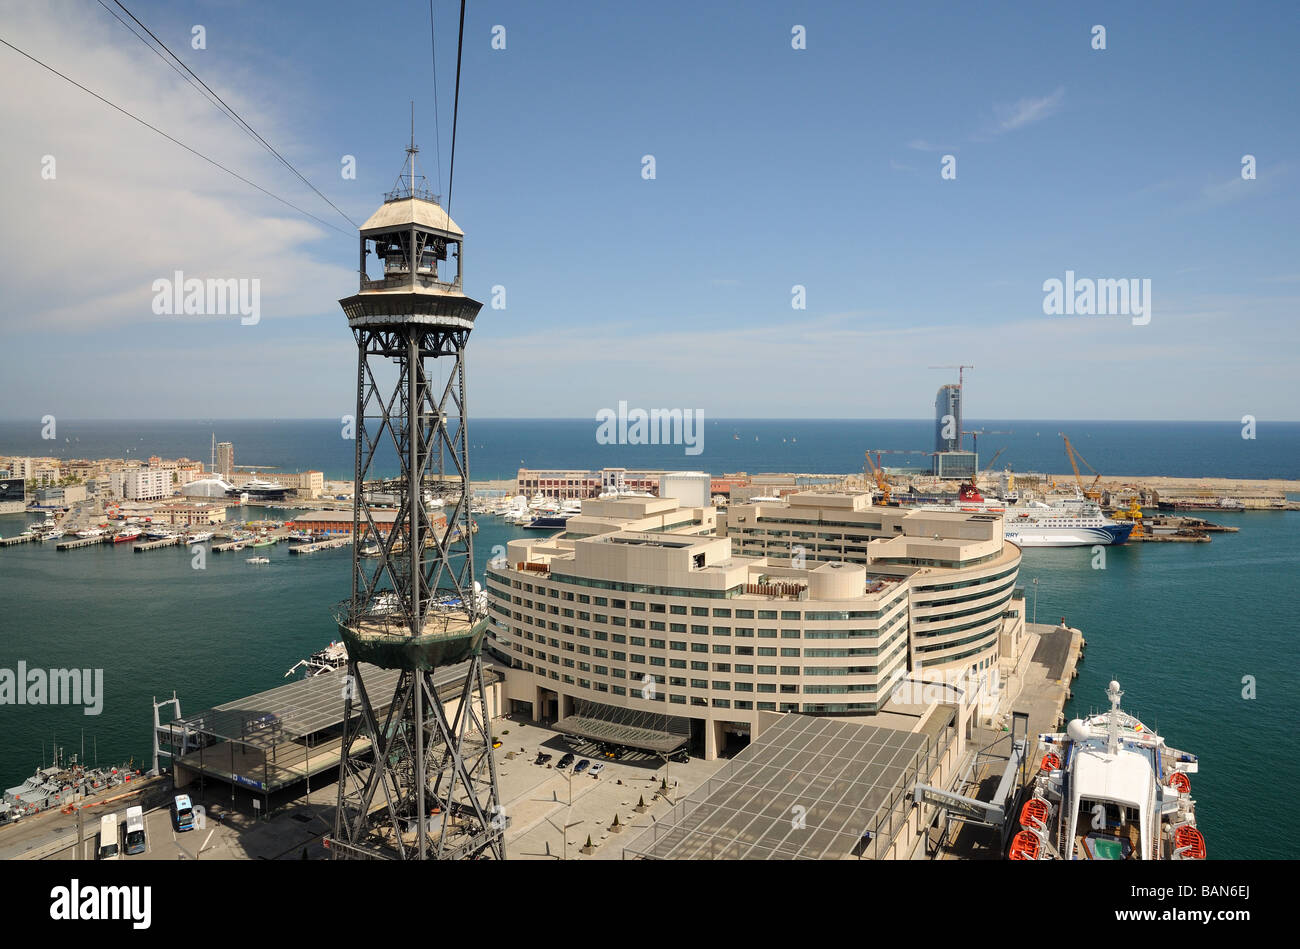 Aerial view of World Trade Center in Barcelona, Spain Stock Photo